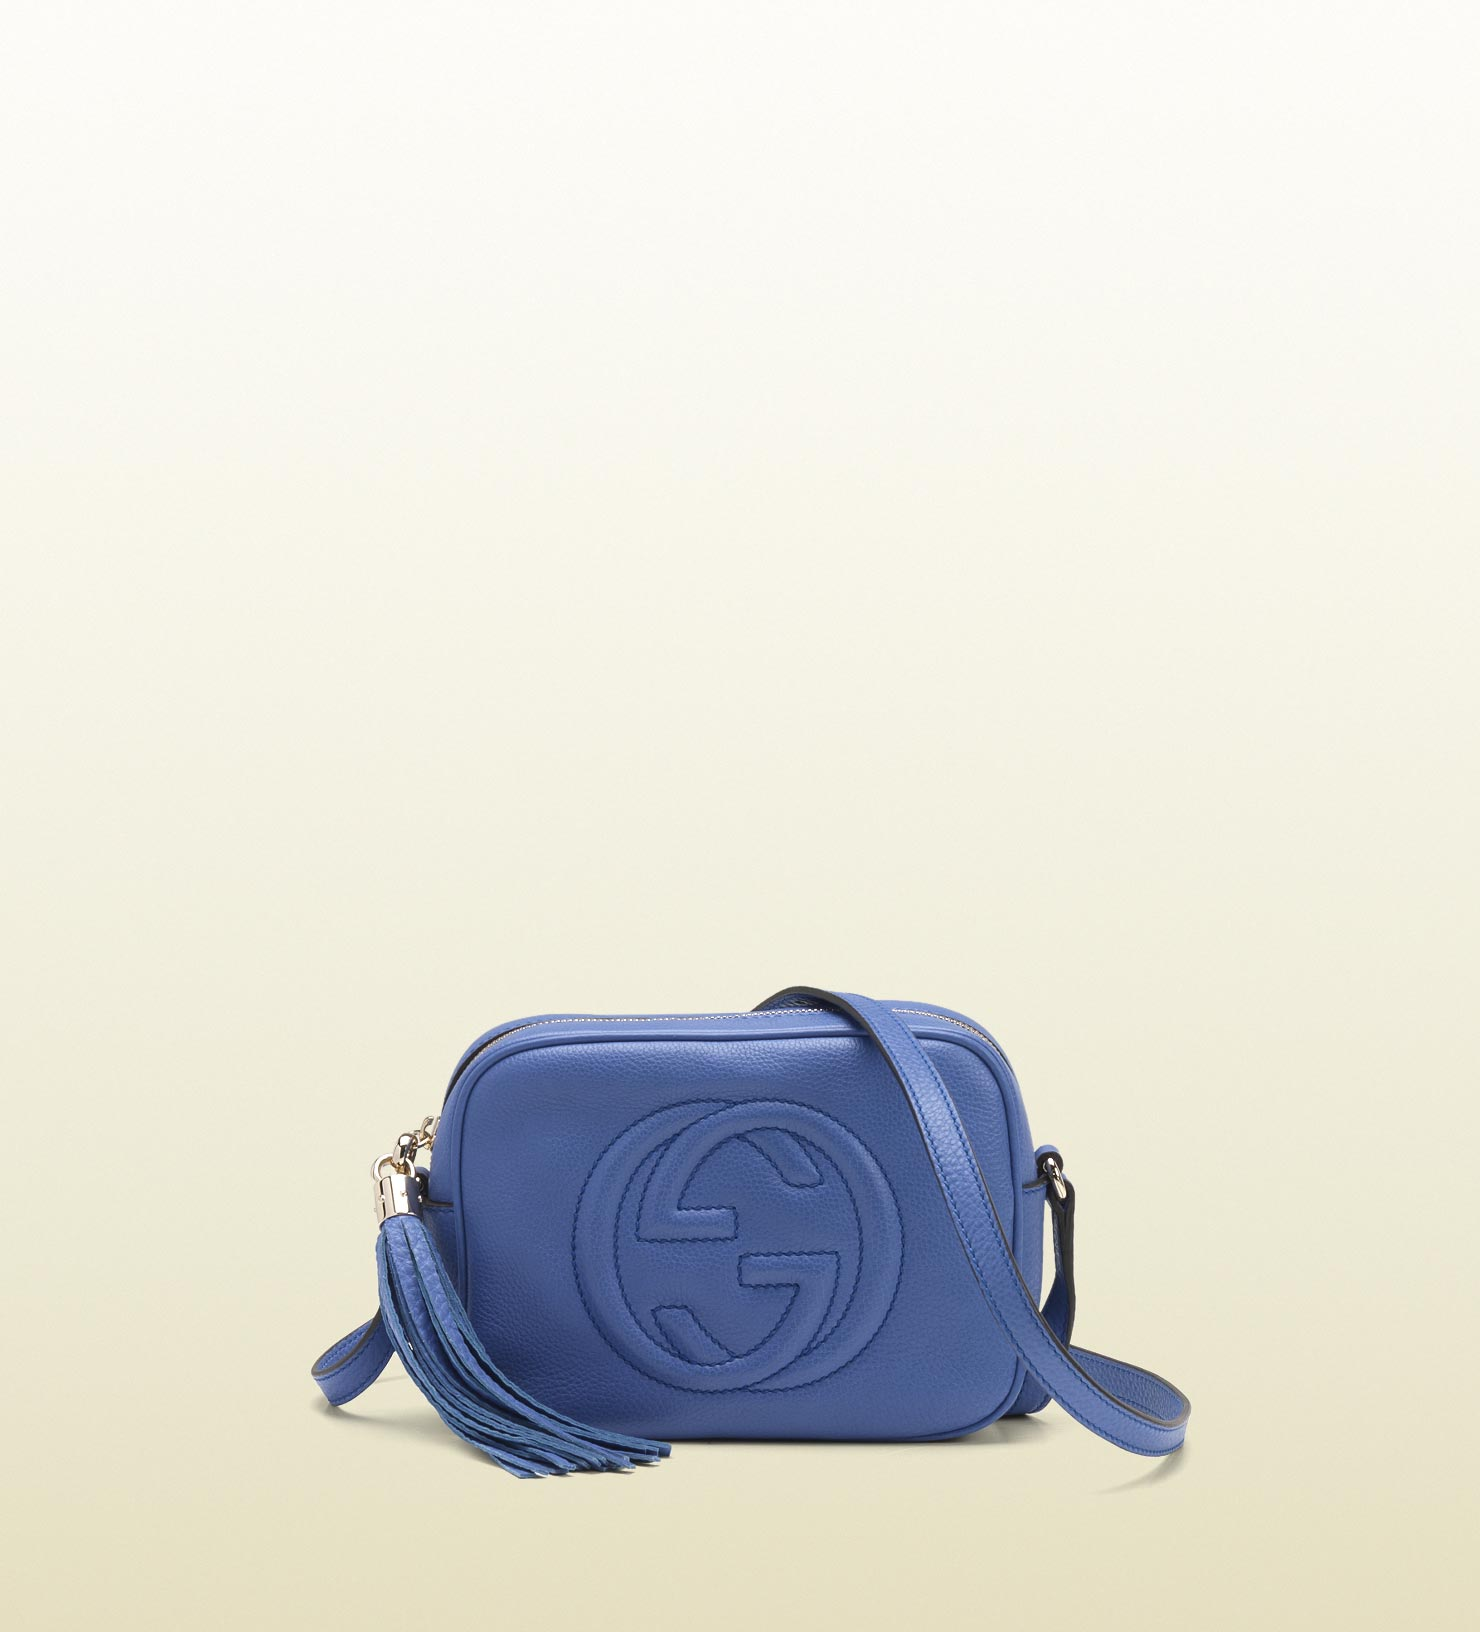 eac51c377600 Lyst - Gucci Soho Periwinkle Leather Disco Bag in Blue